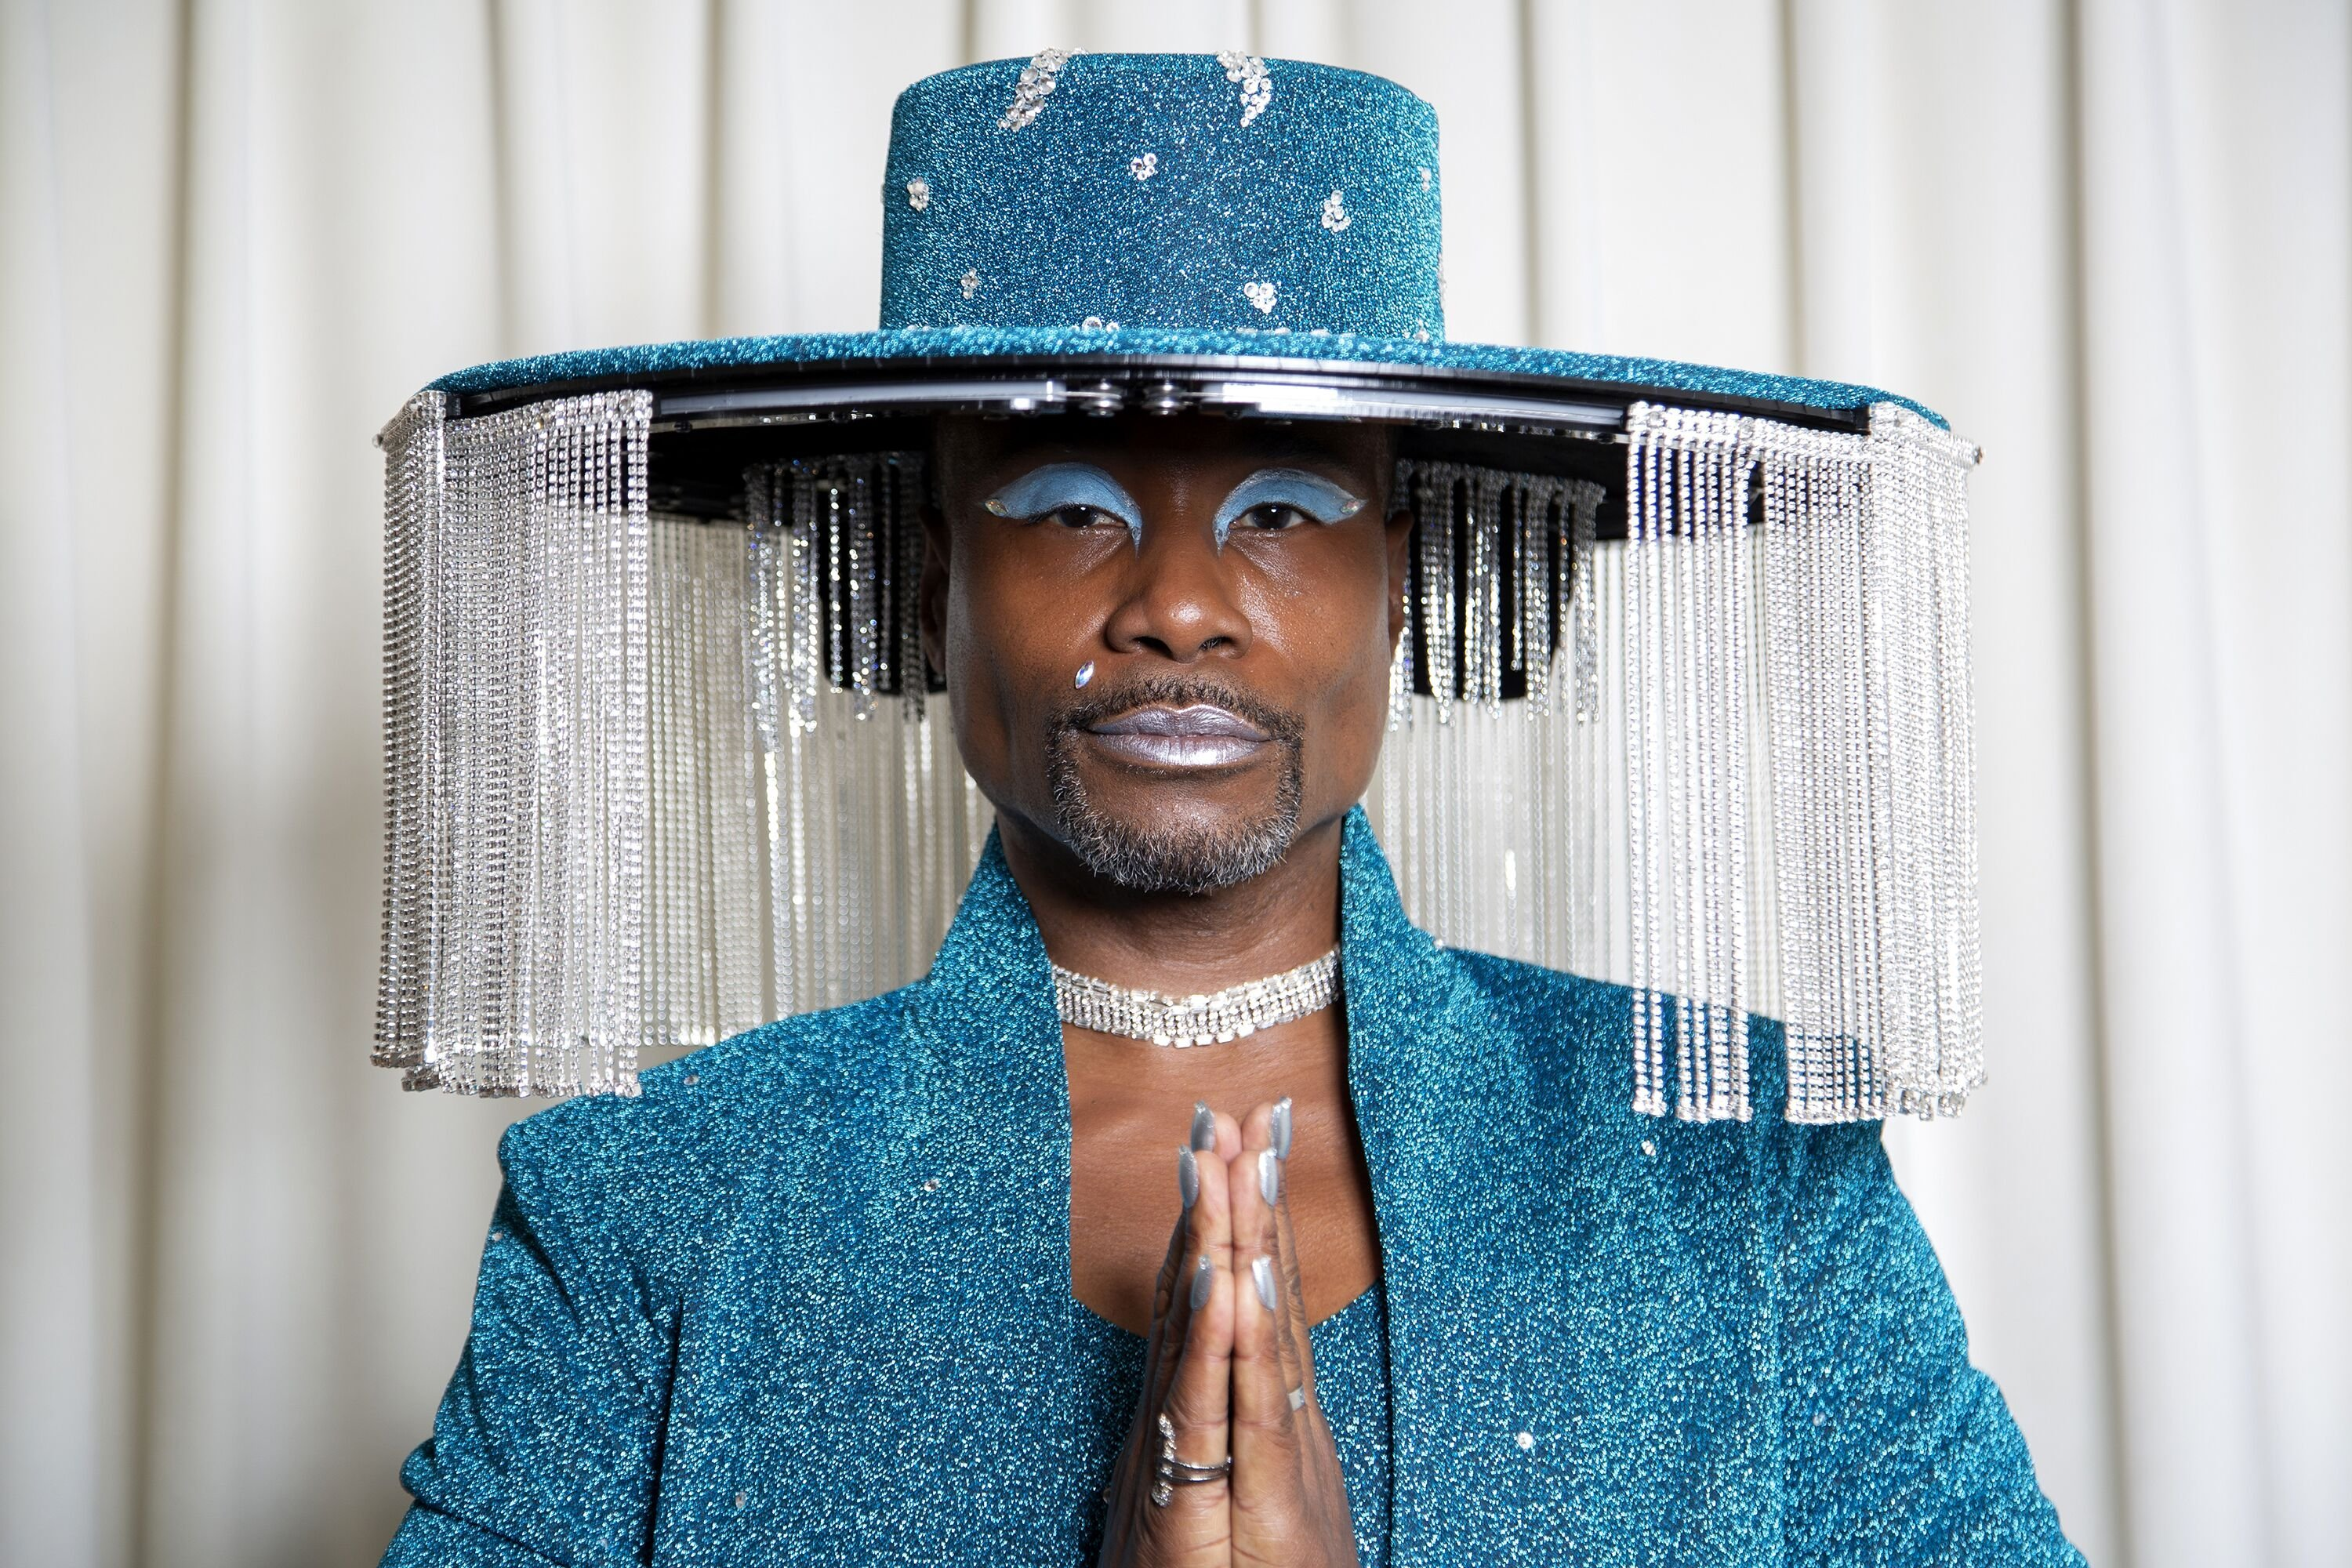 Billy Porter gets ready for The 62nd Annual GRAMMY Awards styled by Sam Ratelle, wearing BAJA EAST and custom hat by Sarah Sokol Millinery on January 26, 2020 in Los Angeles, California | Photo: Getty Images